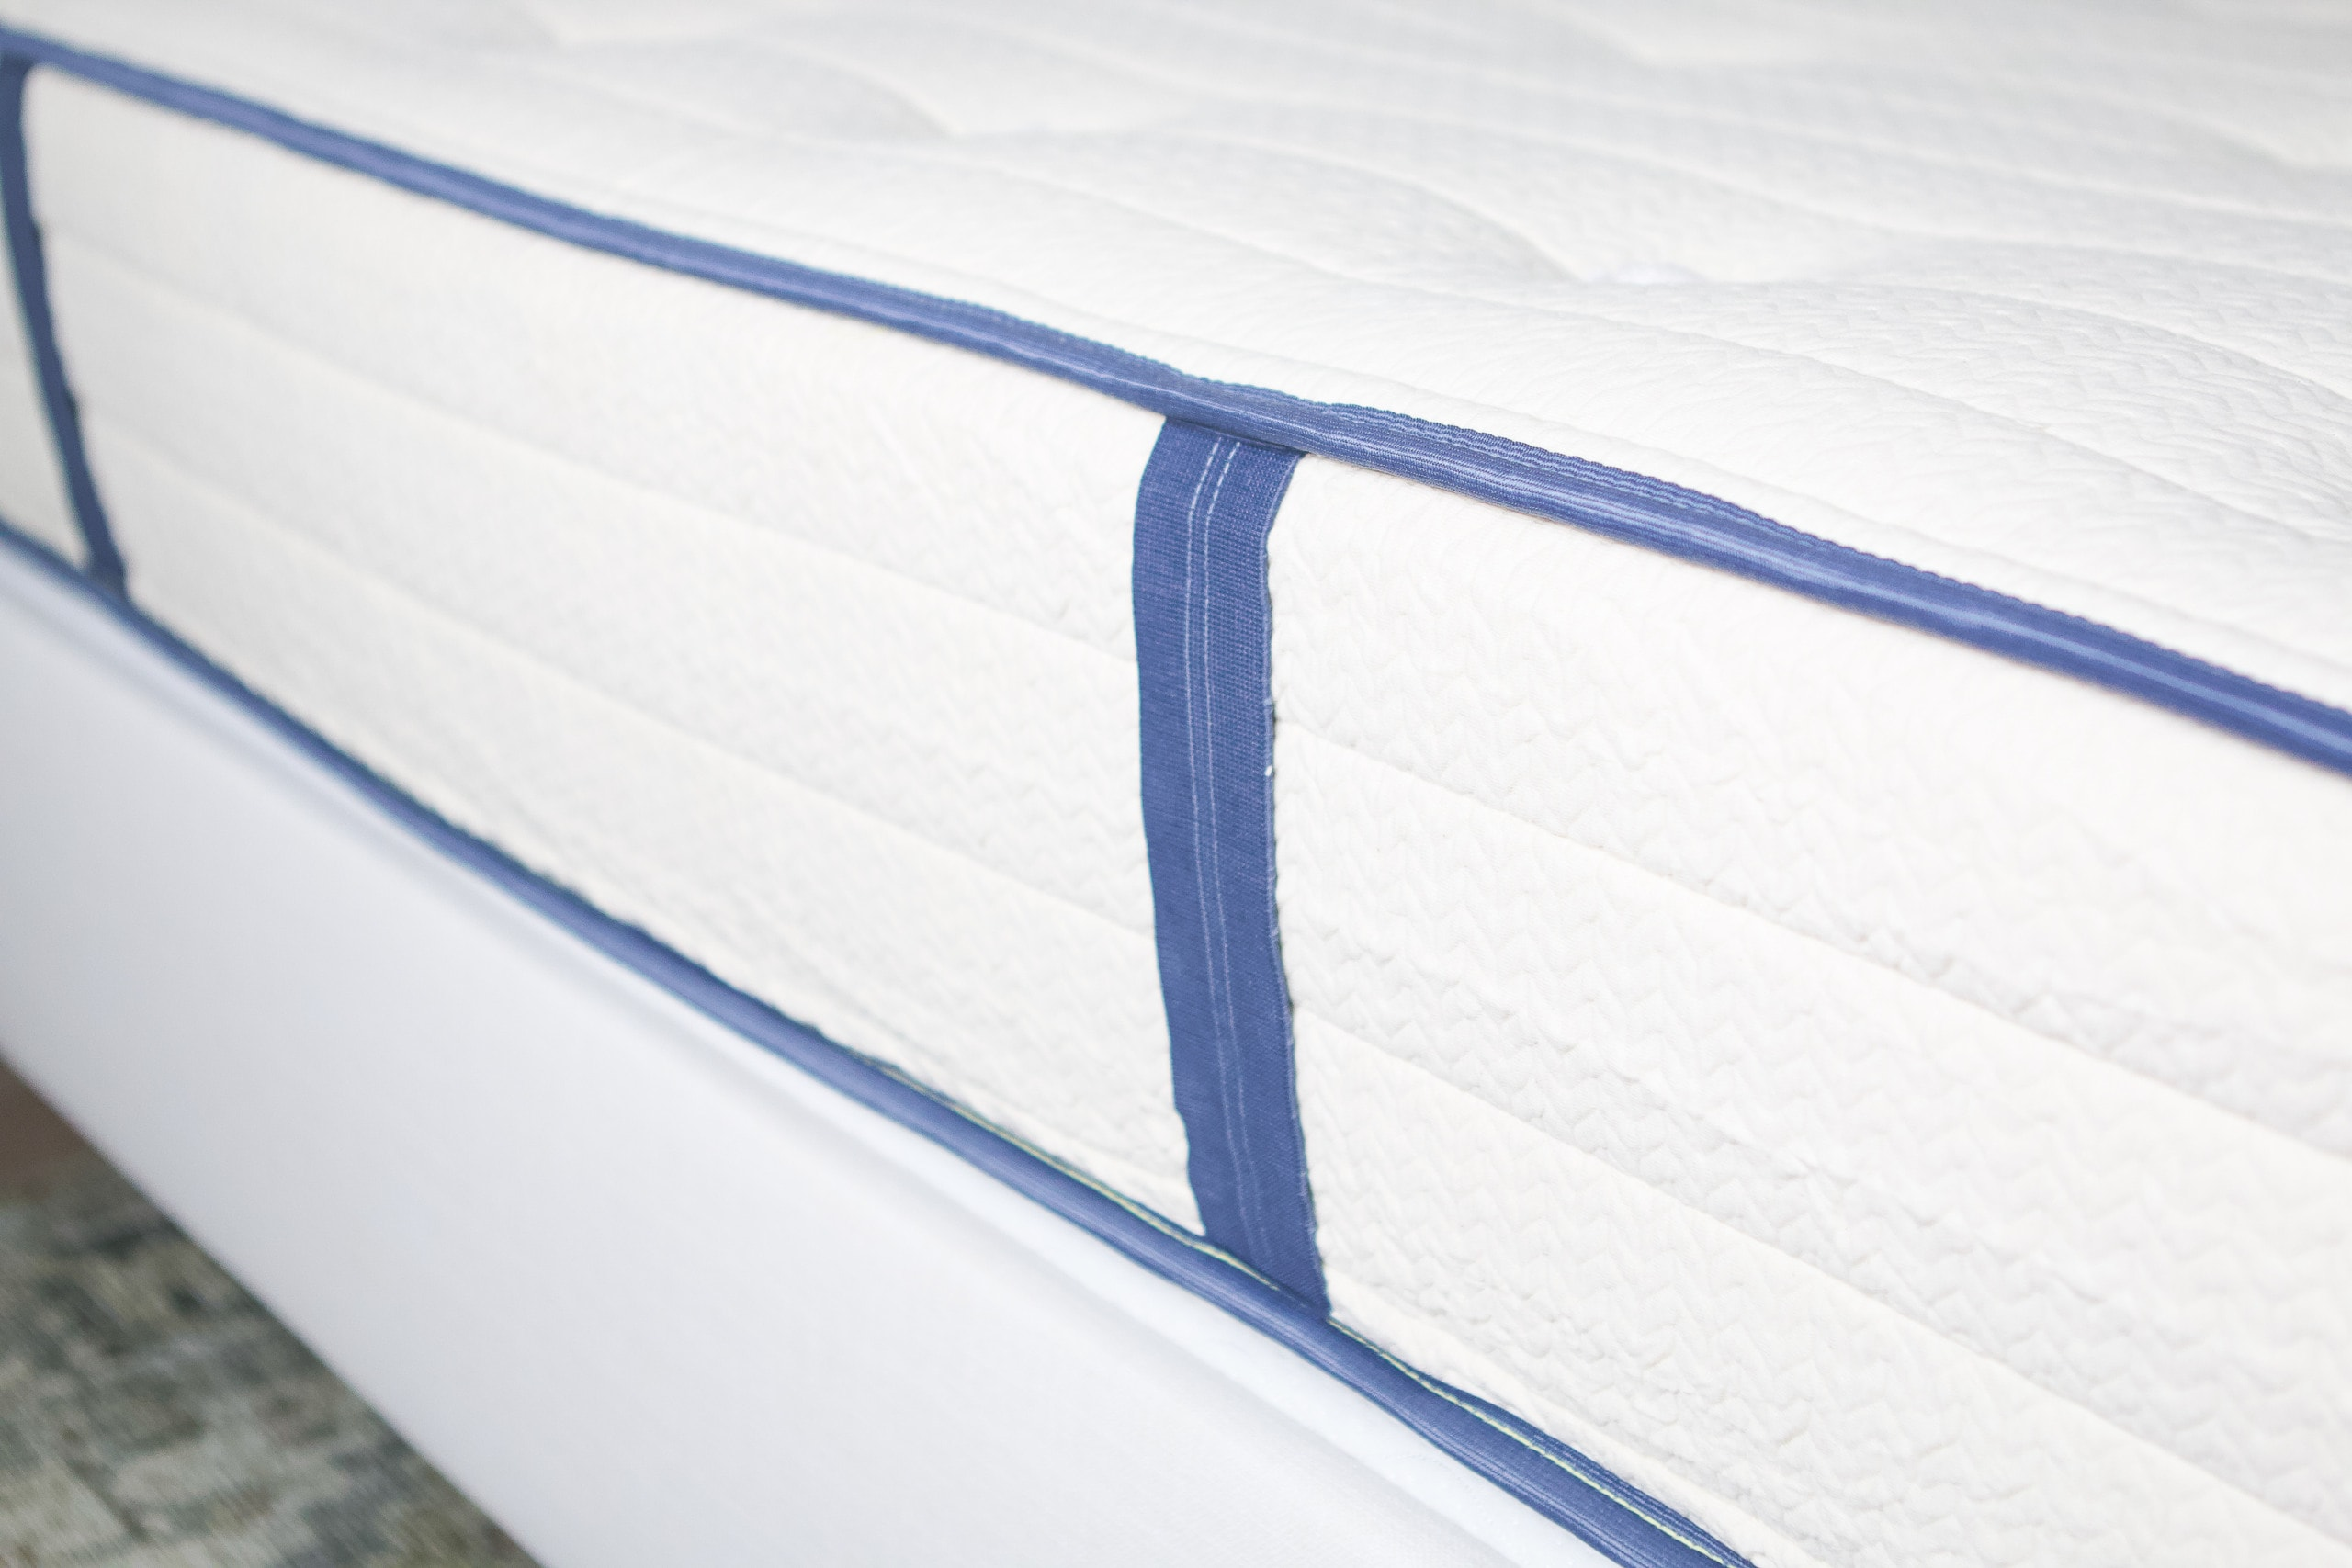 Handles on the side of the mattress